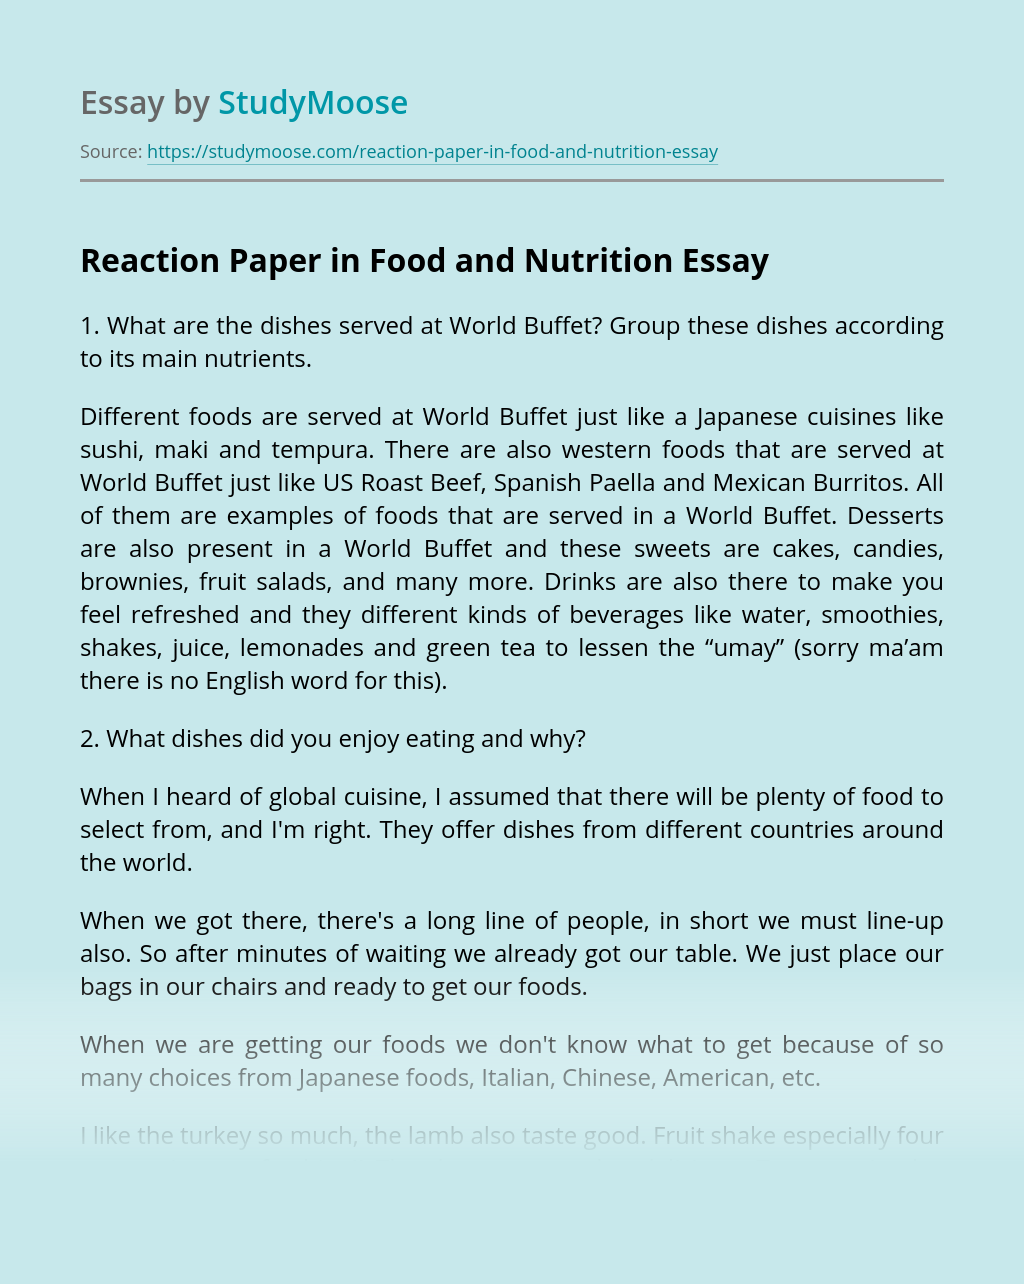 Reaction Paper in Food and Nutrition